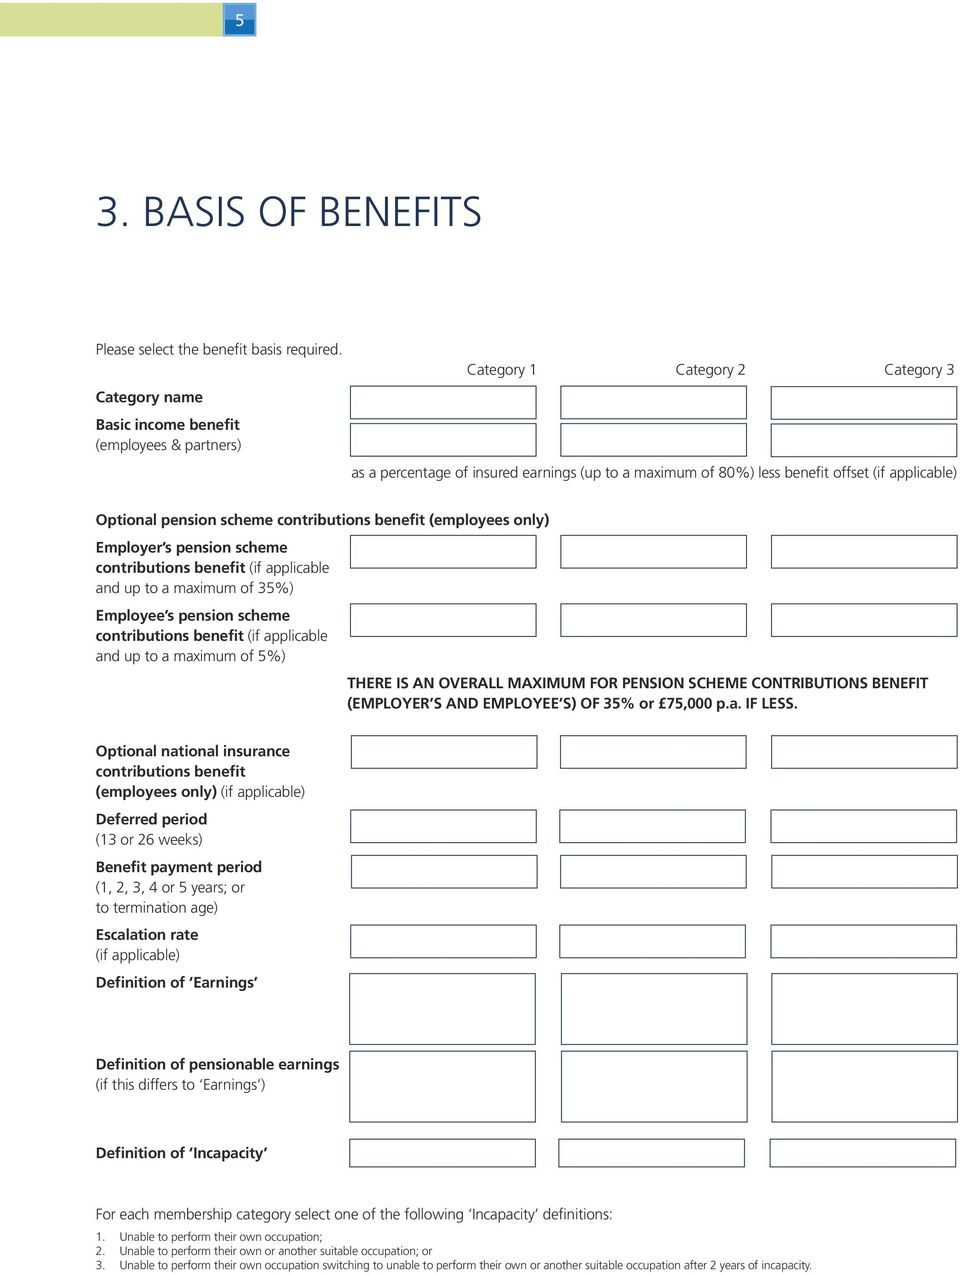 pension scheme contributions benefit (employees only) Employer s pension scheme contributions benefit (if applicable and up to a maximum of 35%) Employee s pension scheme contributions benefit (if